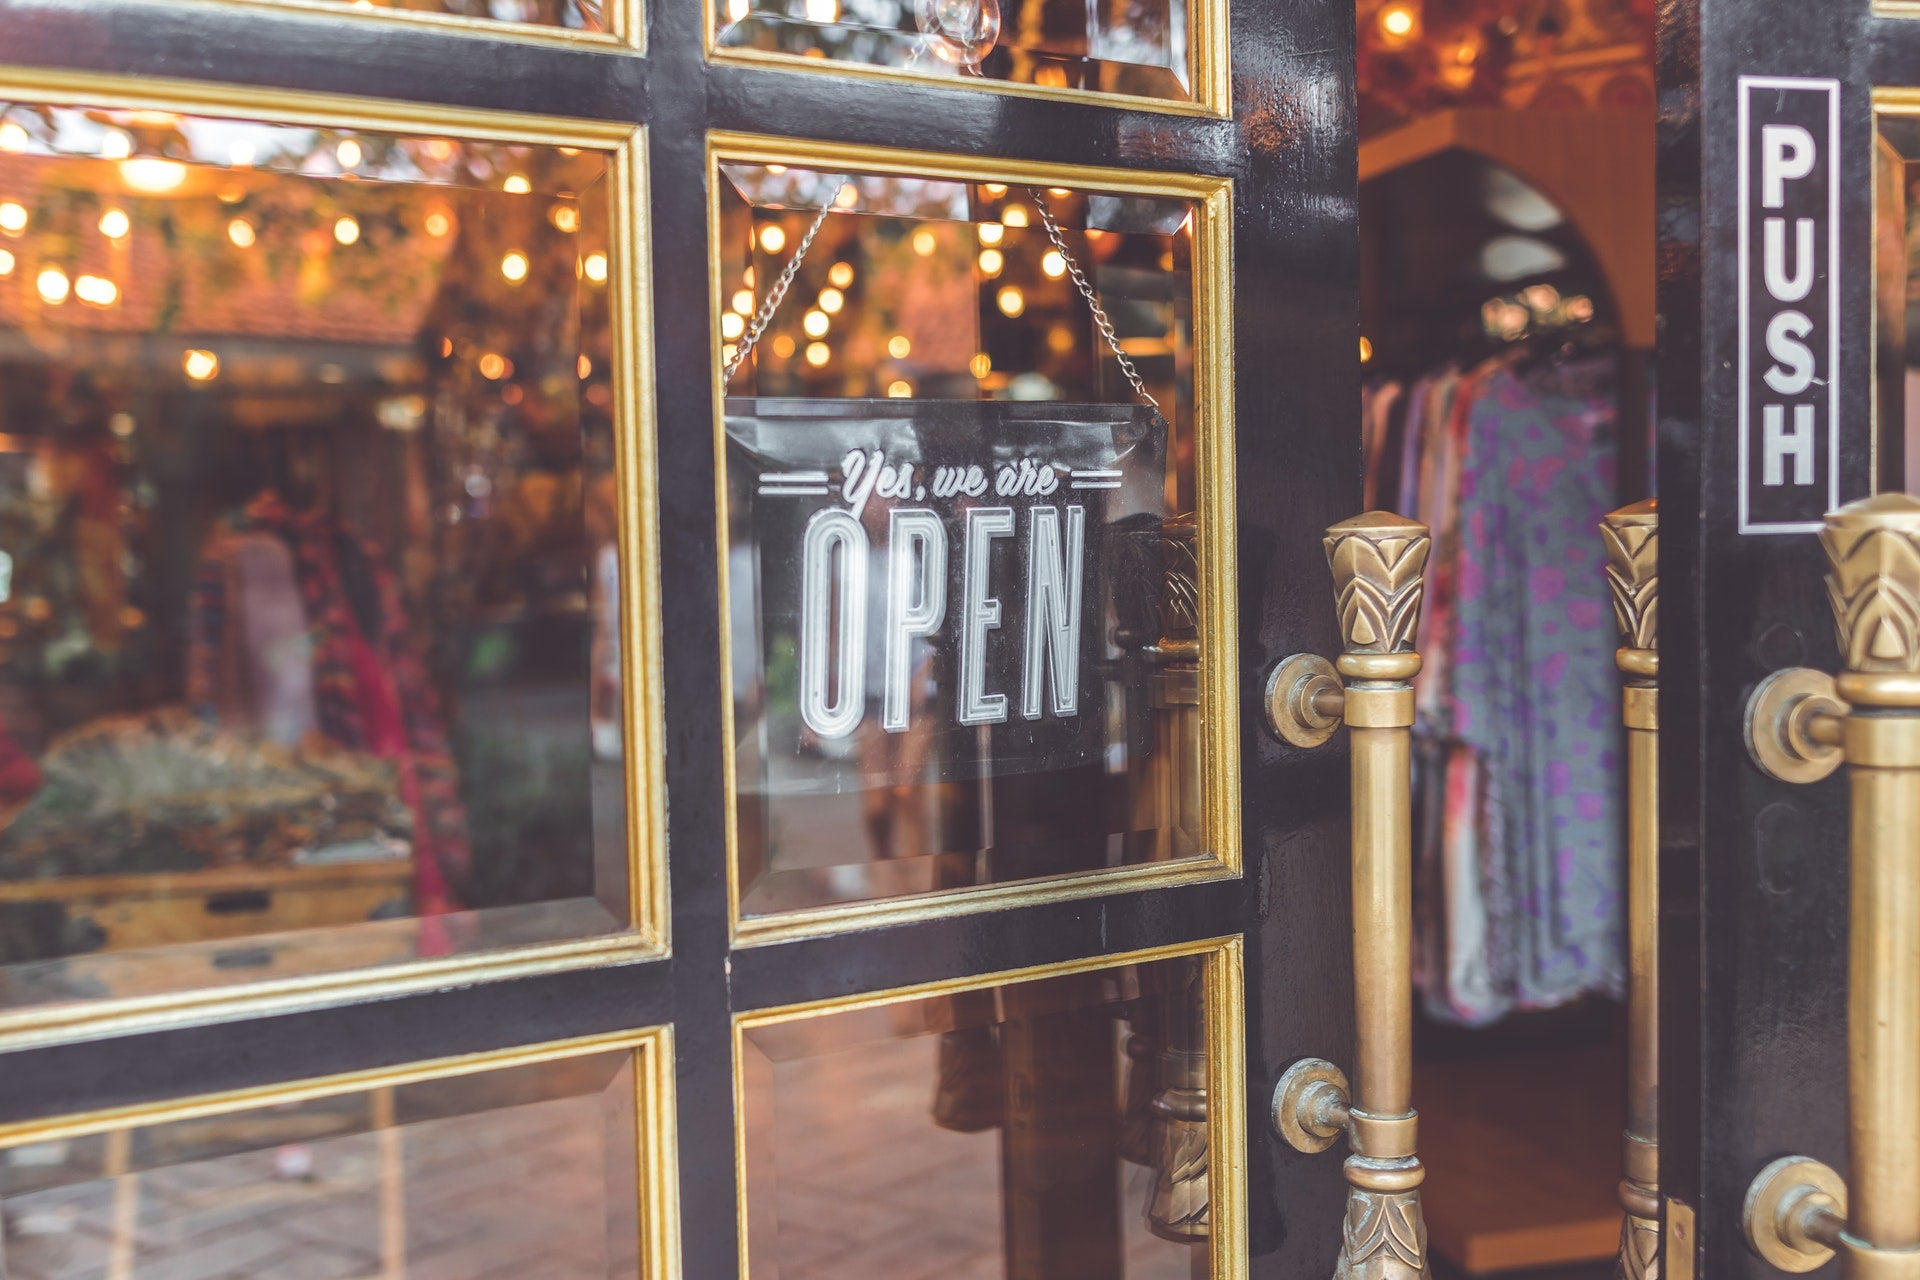 In-store retail events to attract new customers